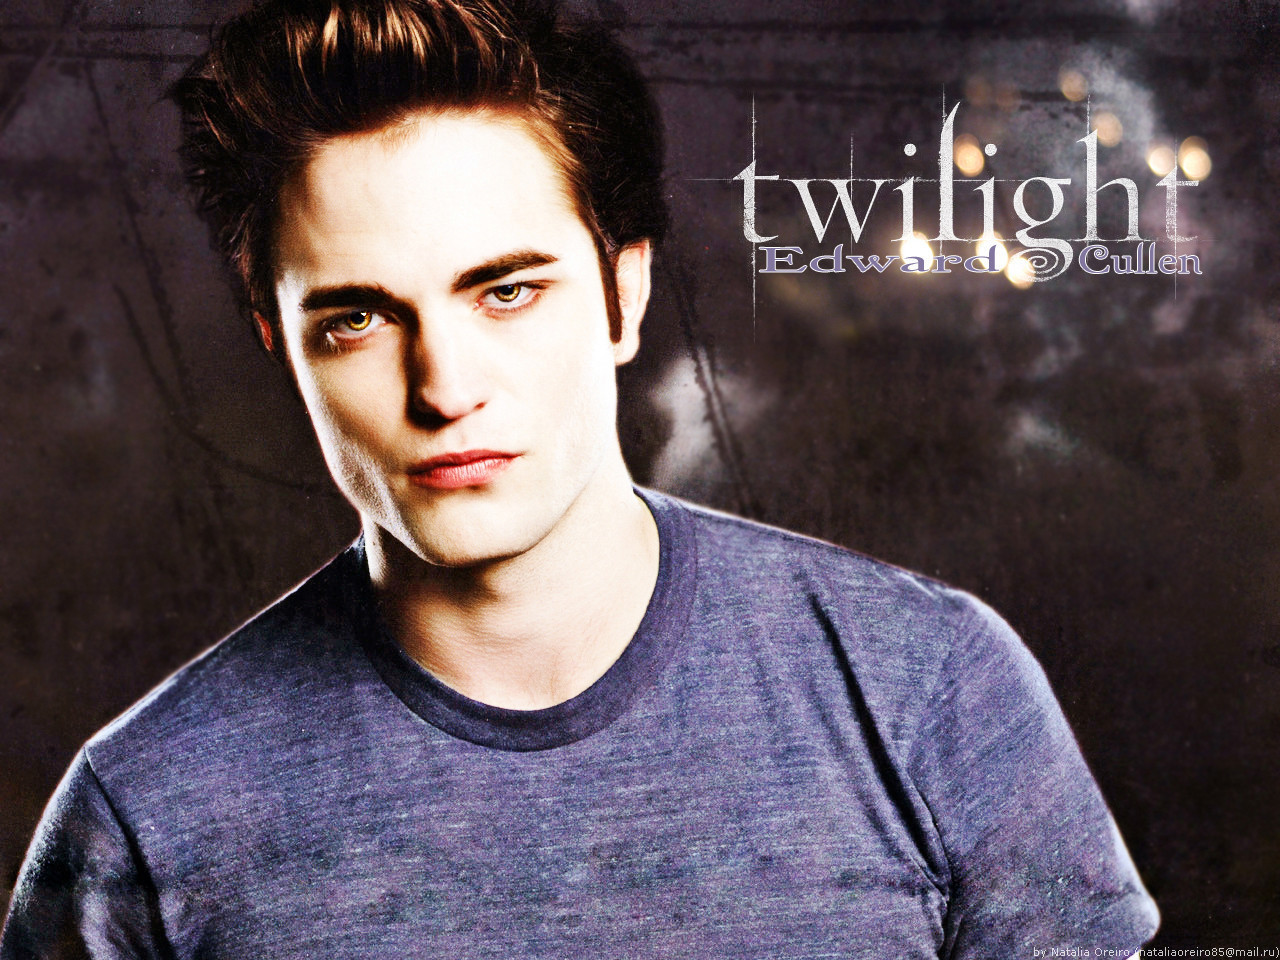 Edward cullen twilight series wallpaper 4451649 fanpop Twilight edward photos